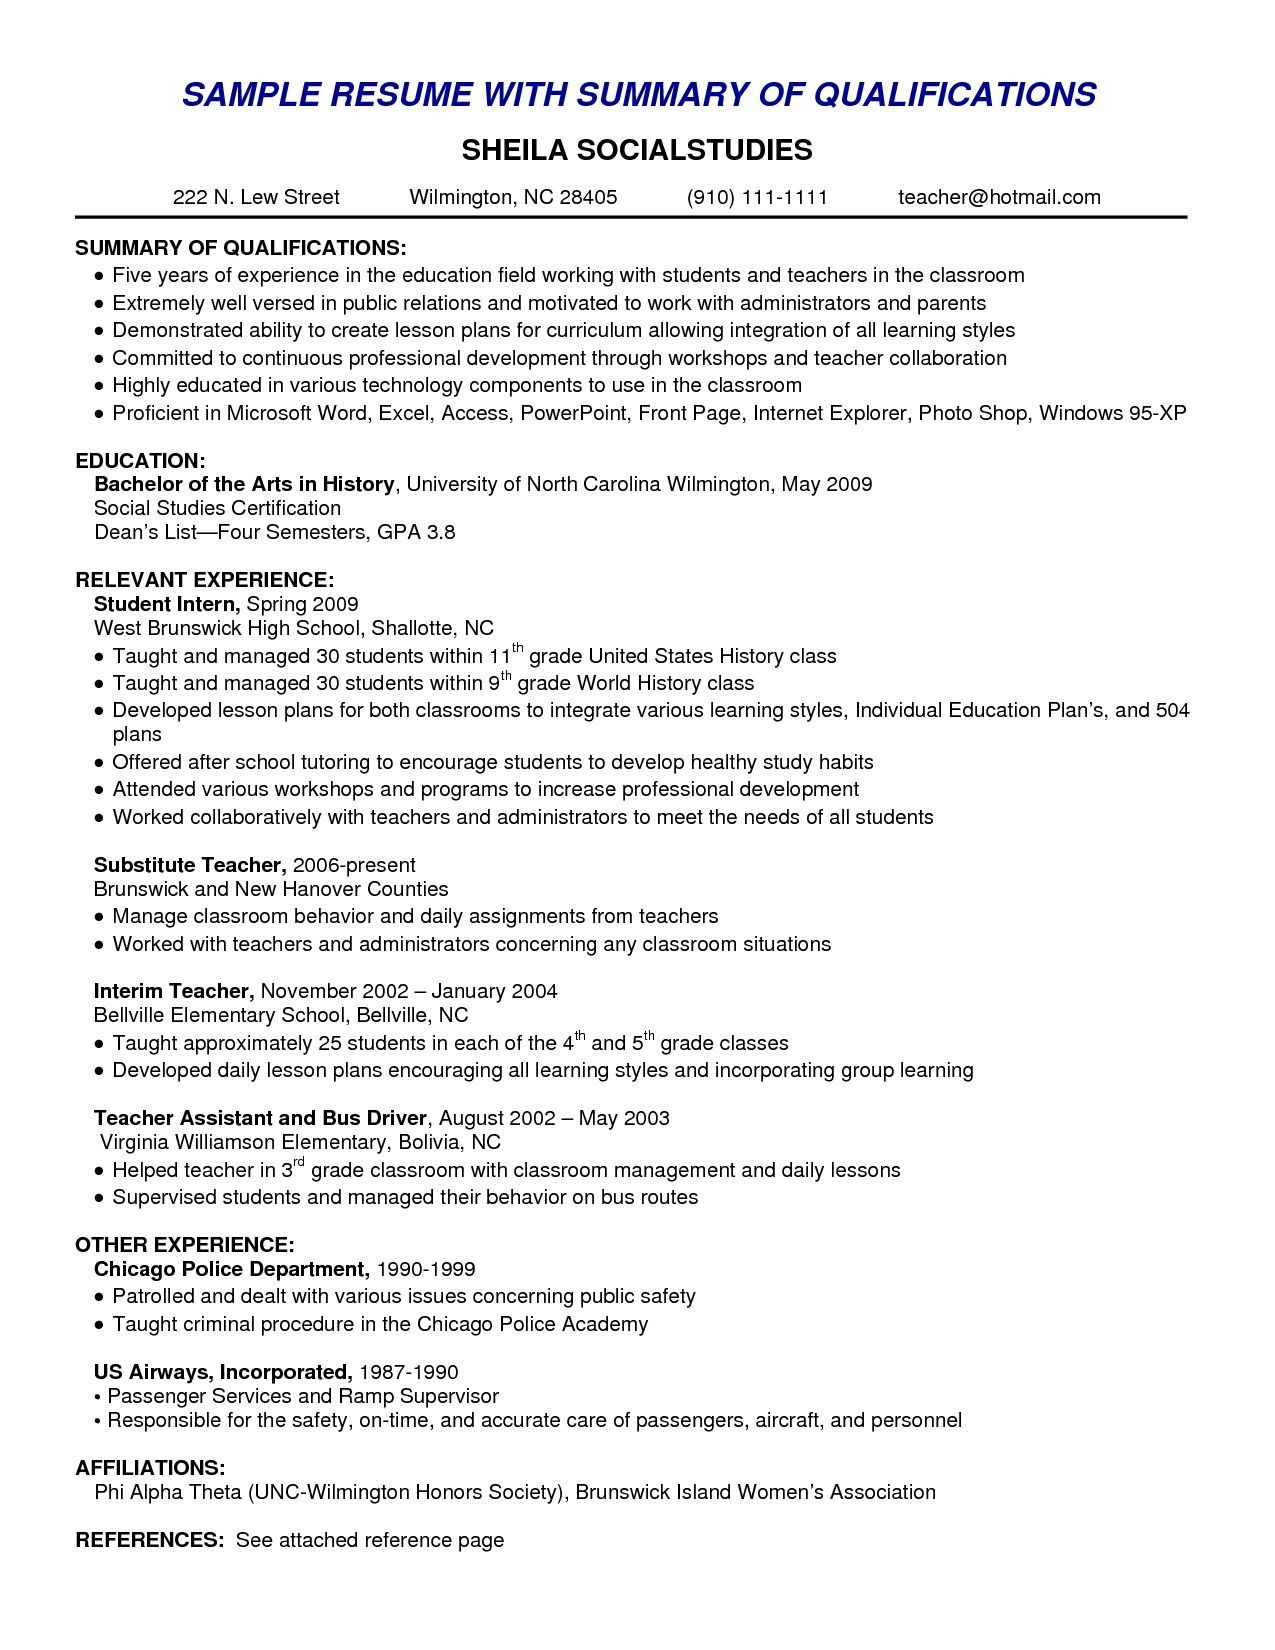 resume examples with summary templates good skills samples for students create free Resume Resume Summary Samples For Students